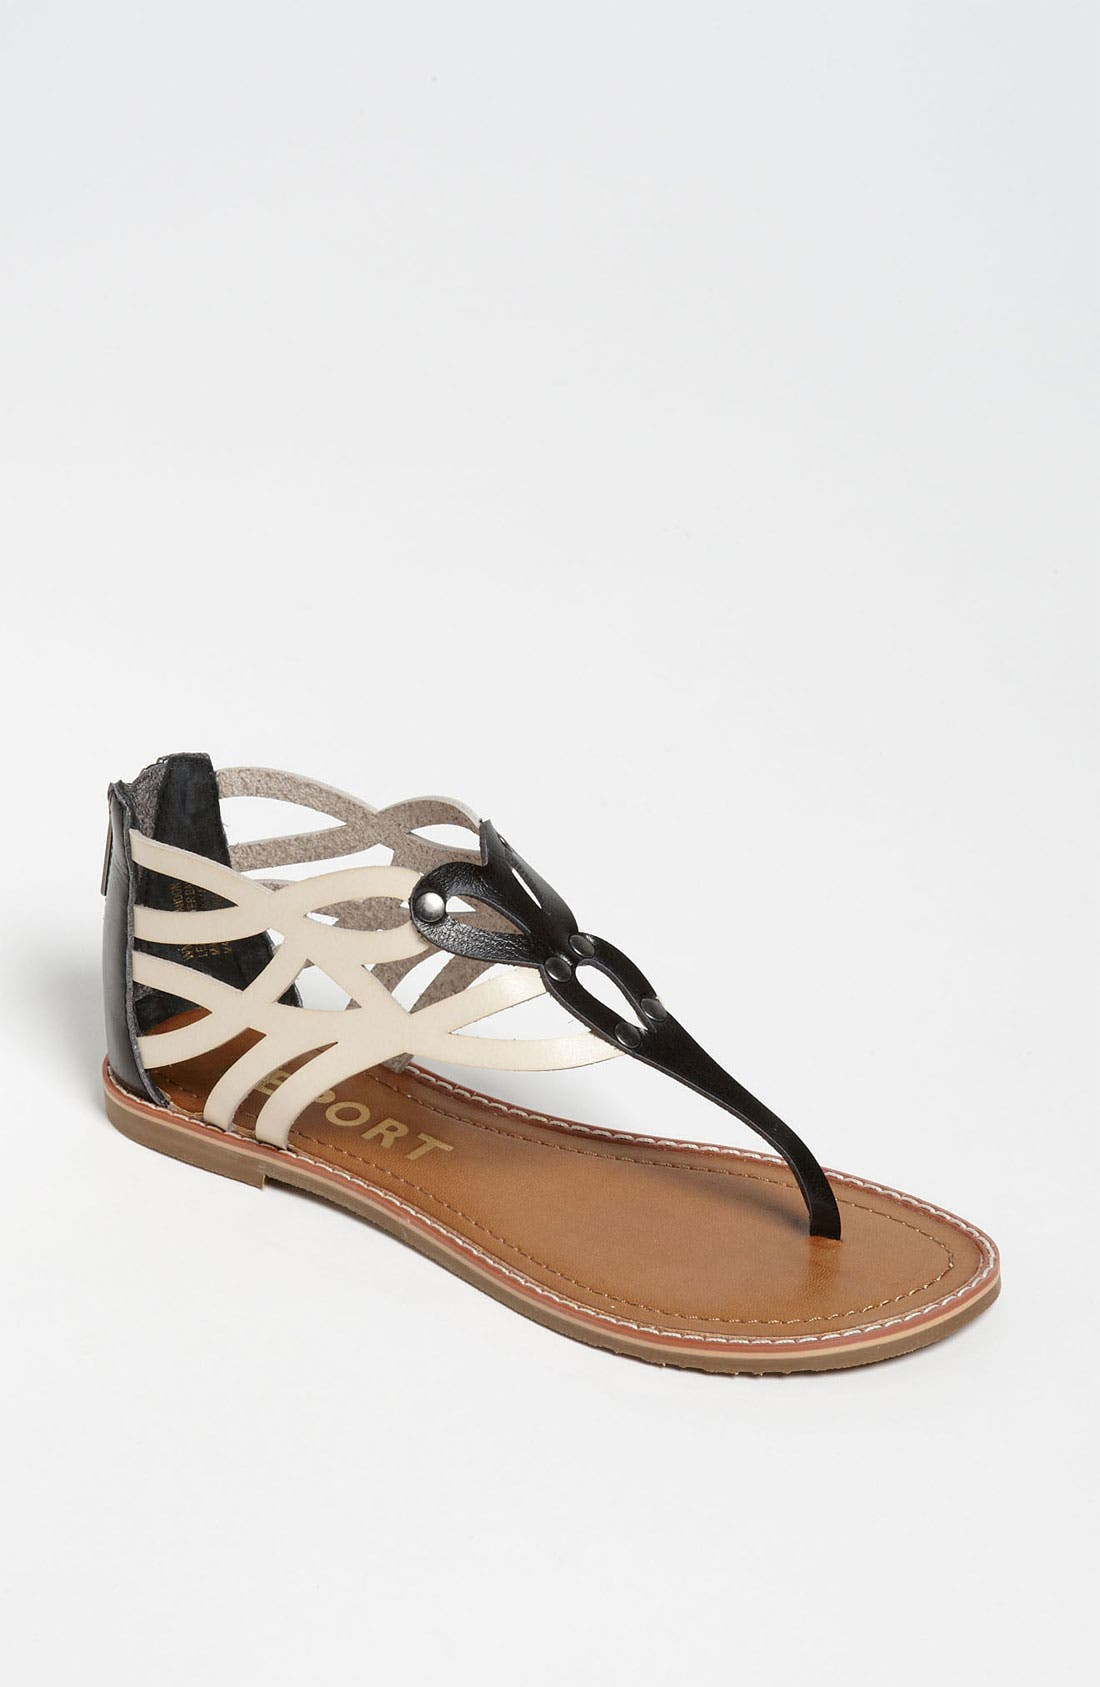 Alternate Image 1 Selected - REPORT 'Landon' Sandal